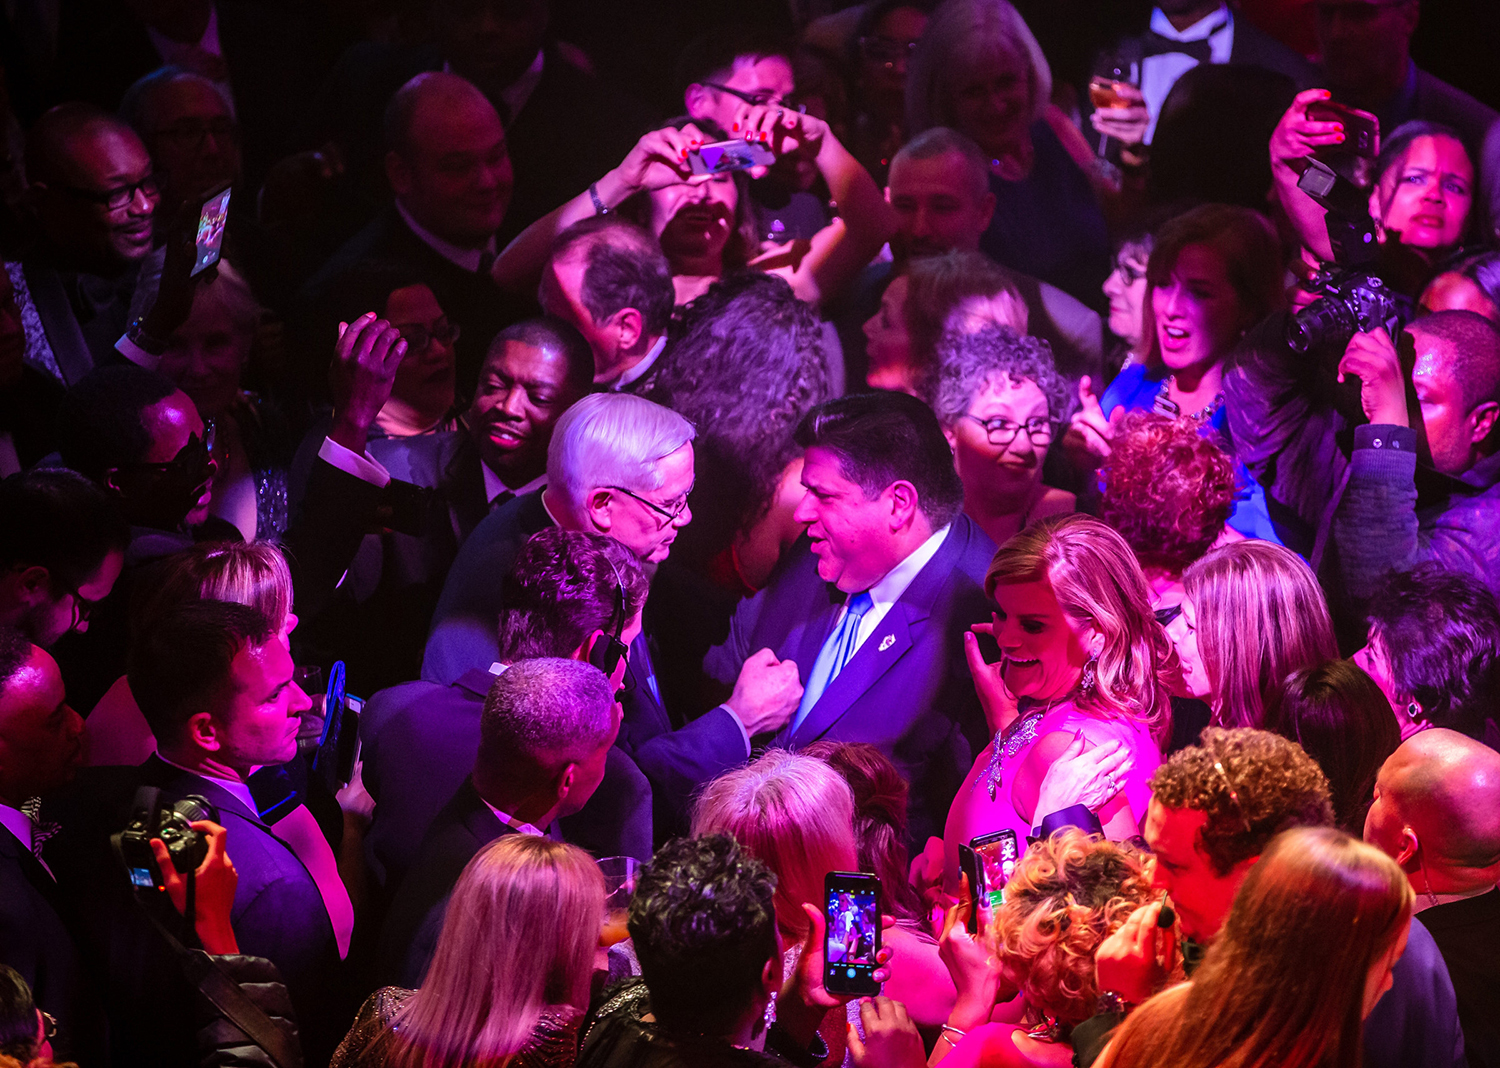 Gov. J.B. Pritzker talks with Bill Houlihan as he makes his way out into the crowd with his wife M.K. Pritzker after their first dance at the Inaugural Ball at the Exposition Building on the Illinois State Fairgrounds, Monday, Jan. 14, 2019, in Springfield, Ill. [Justin L. Fowler/The State Journal-Register]